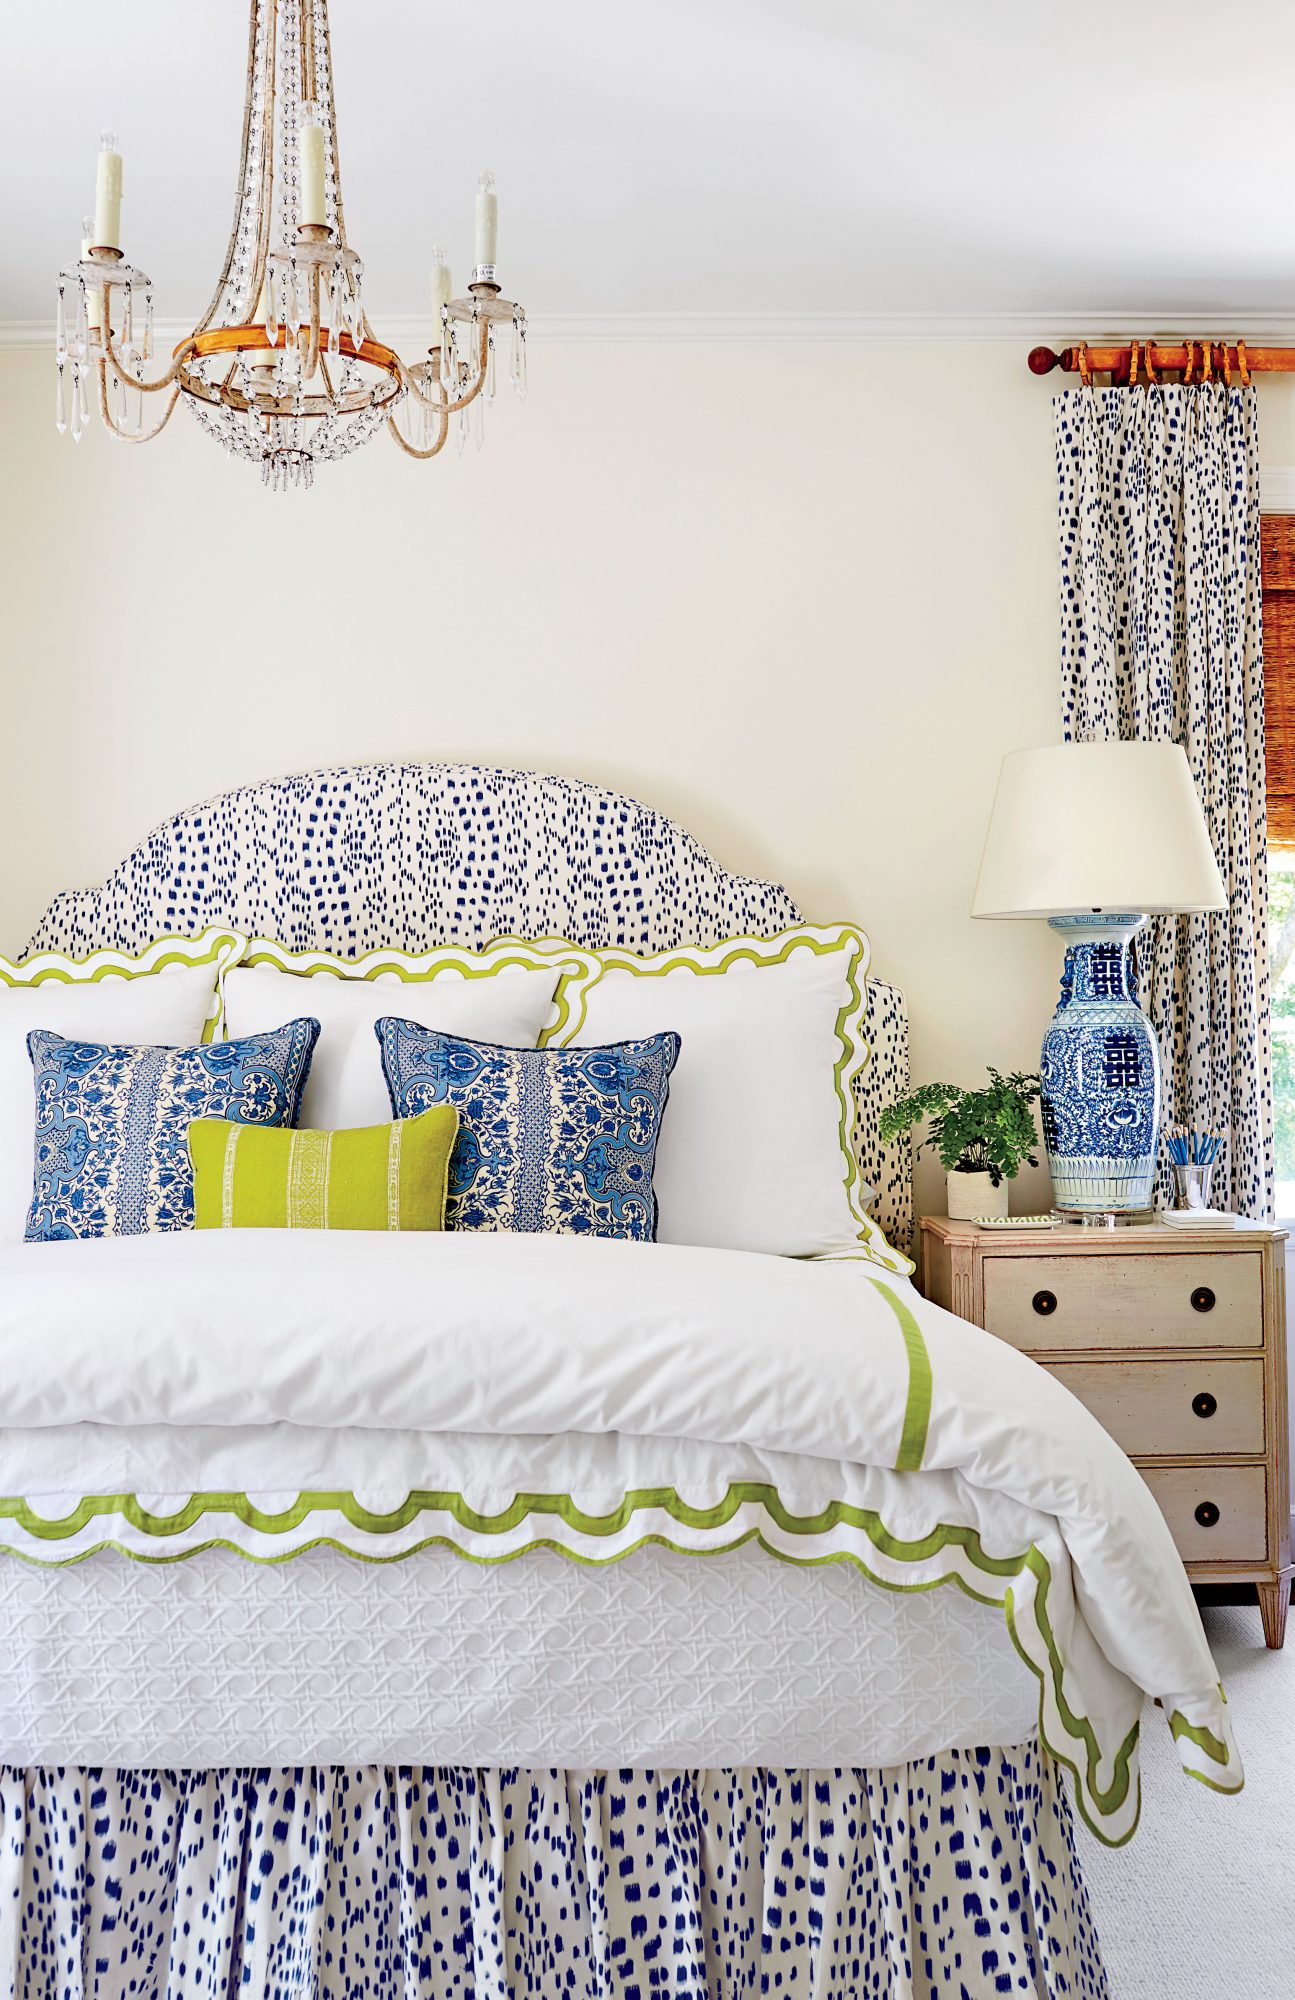 9 Things That Make A Bedroom Unsophisticated